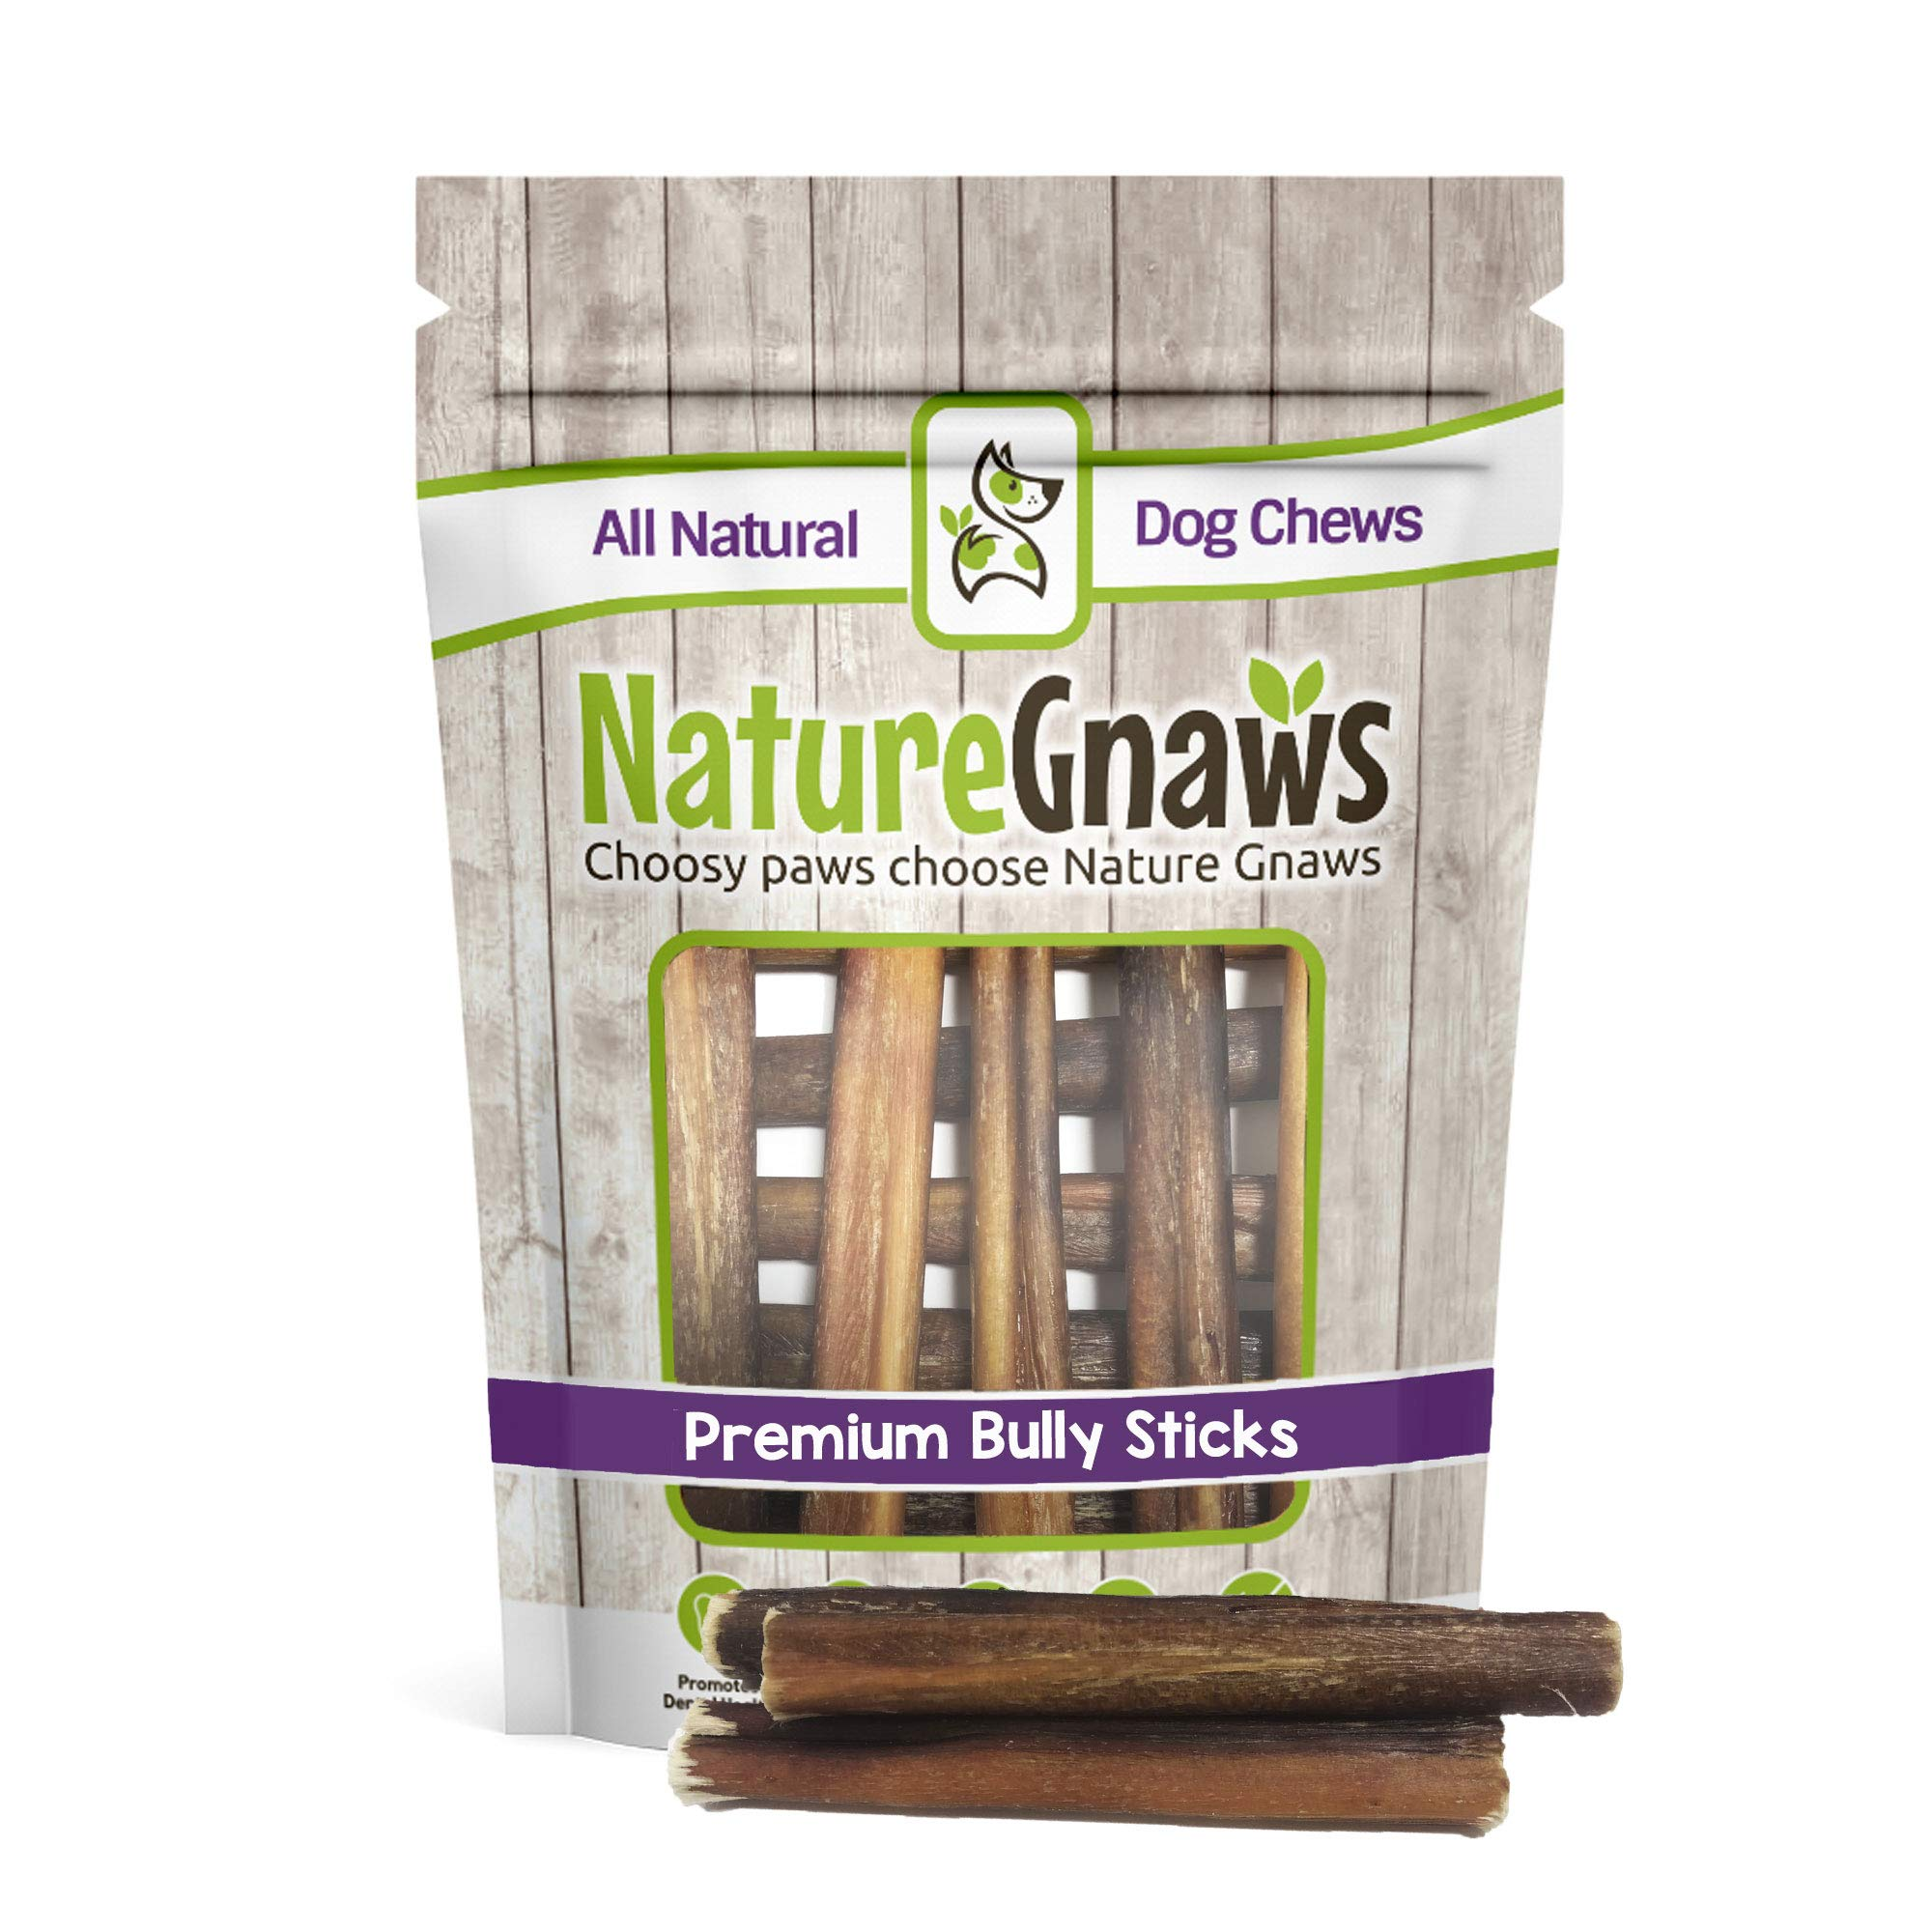 Nature Gnaws Large Bully Sticks 5-6 inch (3 Pack) - 100% Natural Grass-Fed Beef Dog Chews